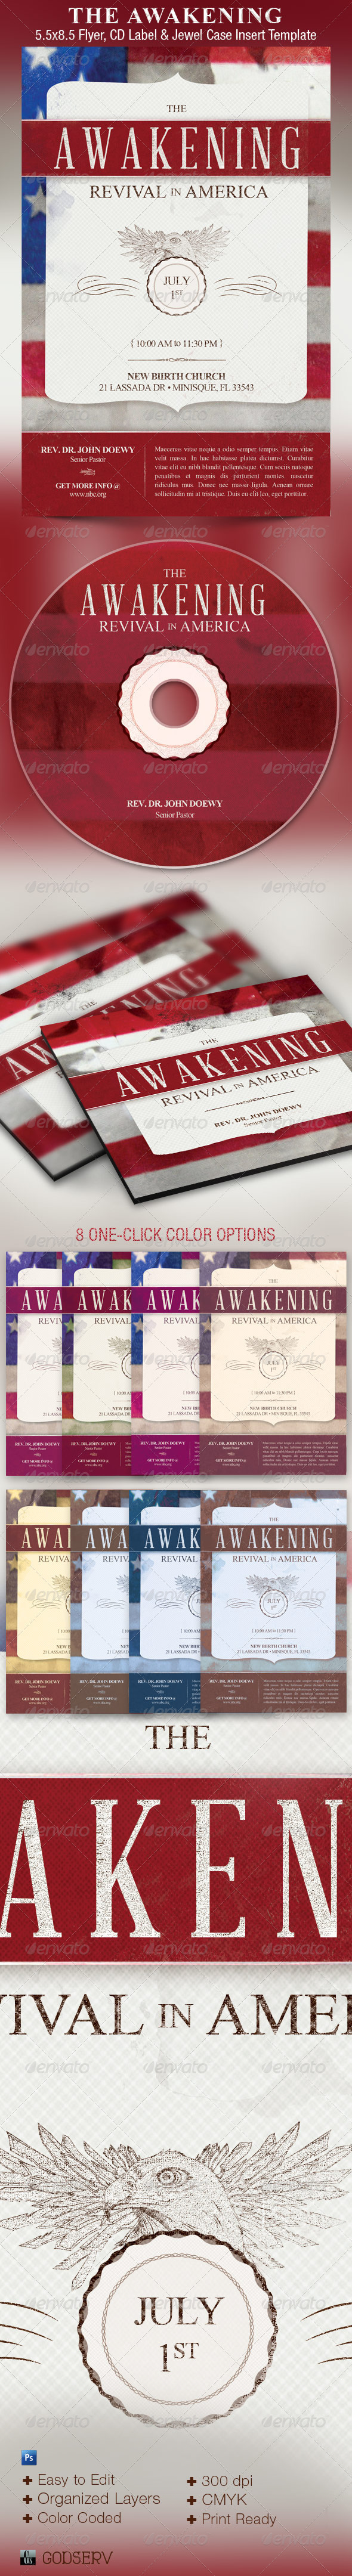 The Awakening Revival Church Flyer and CD Template - Church Flyers